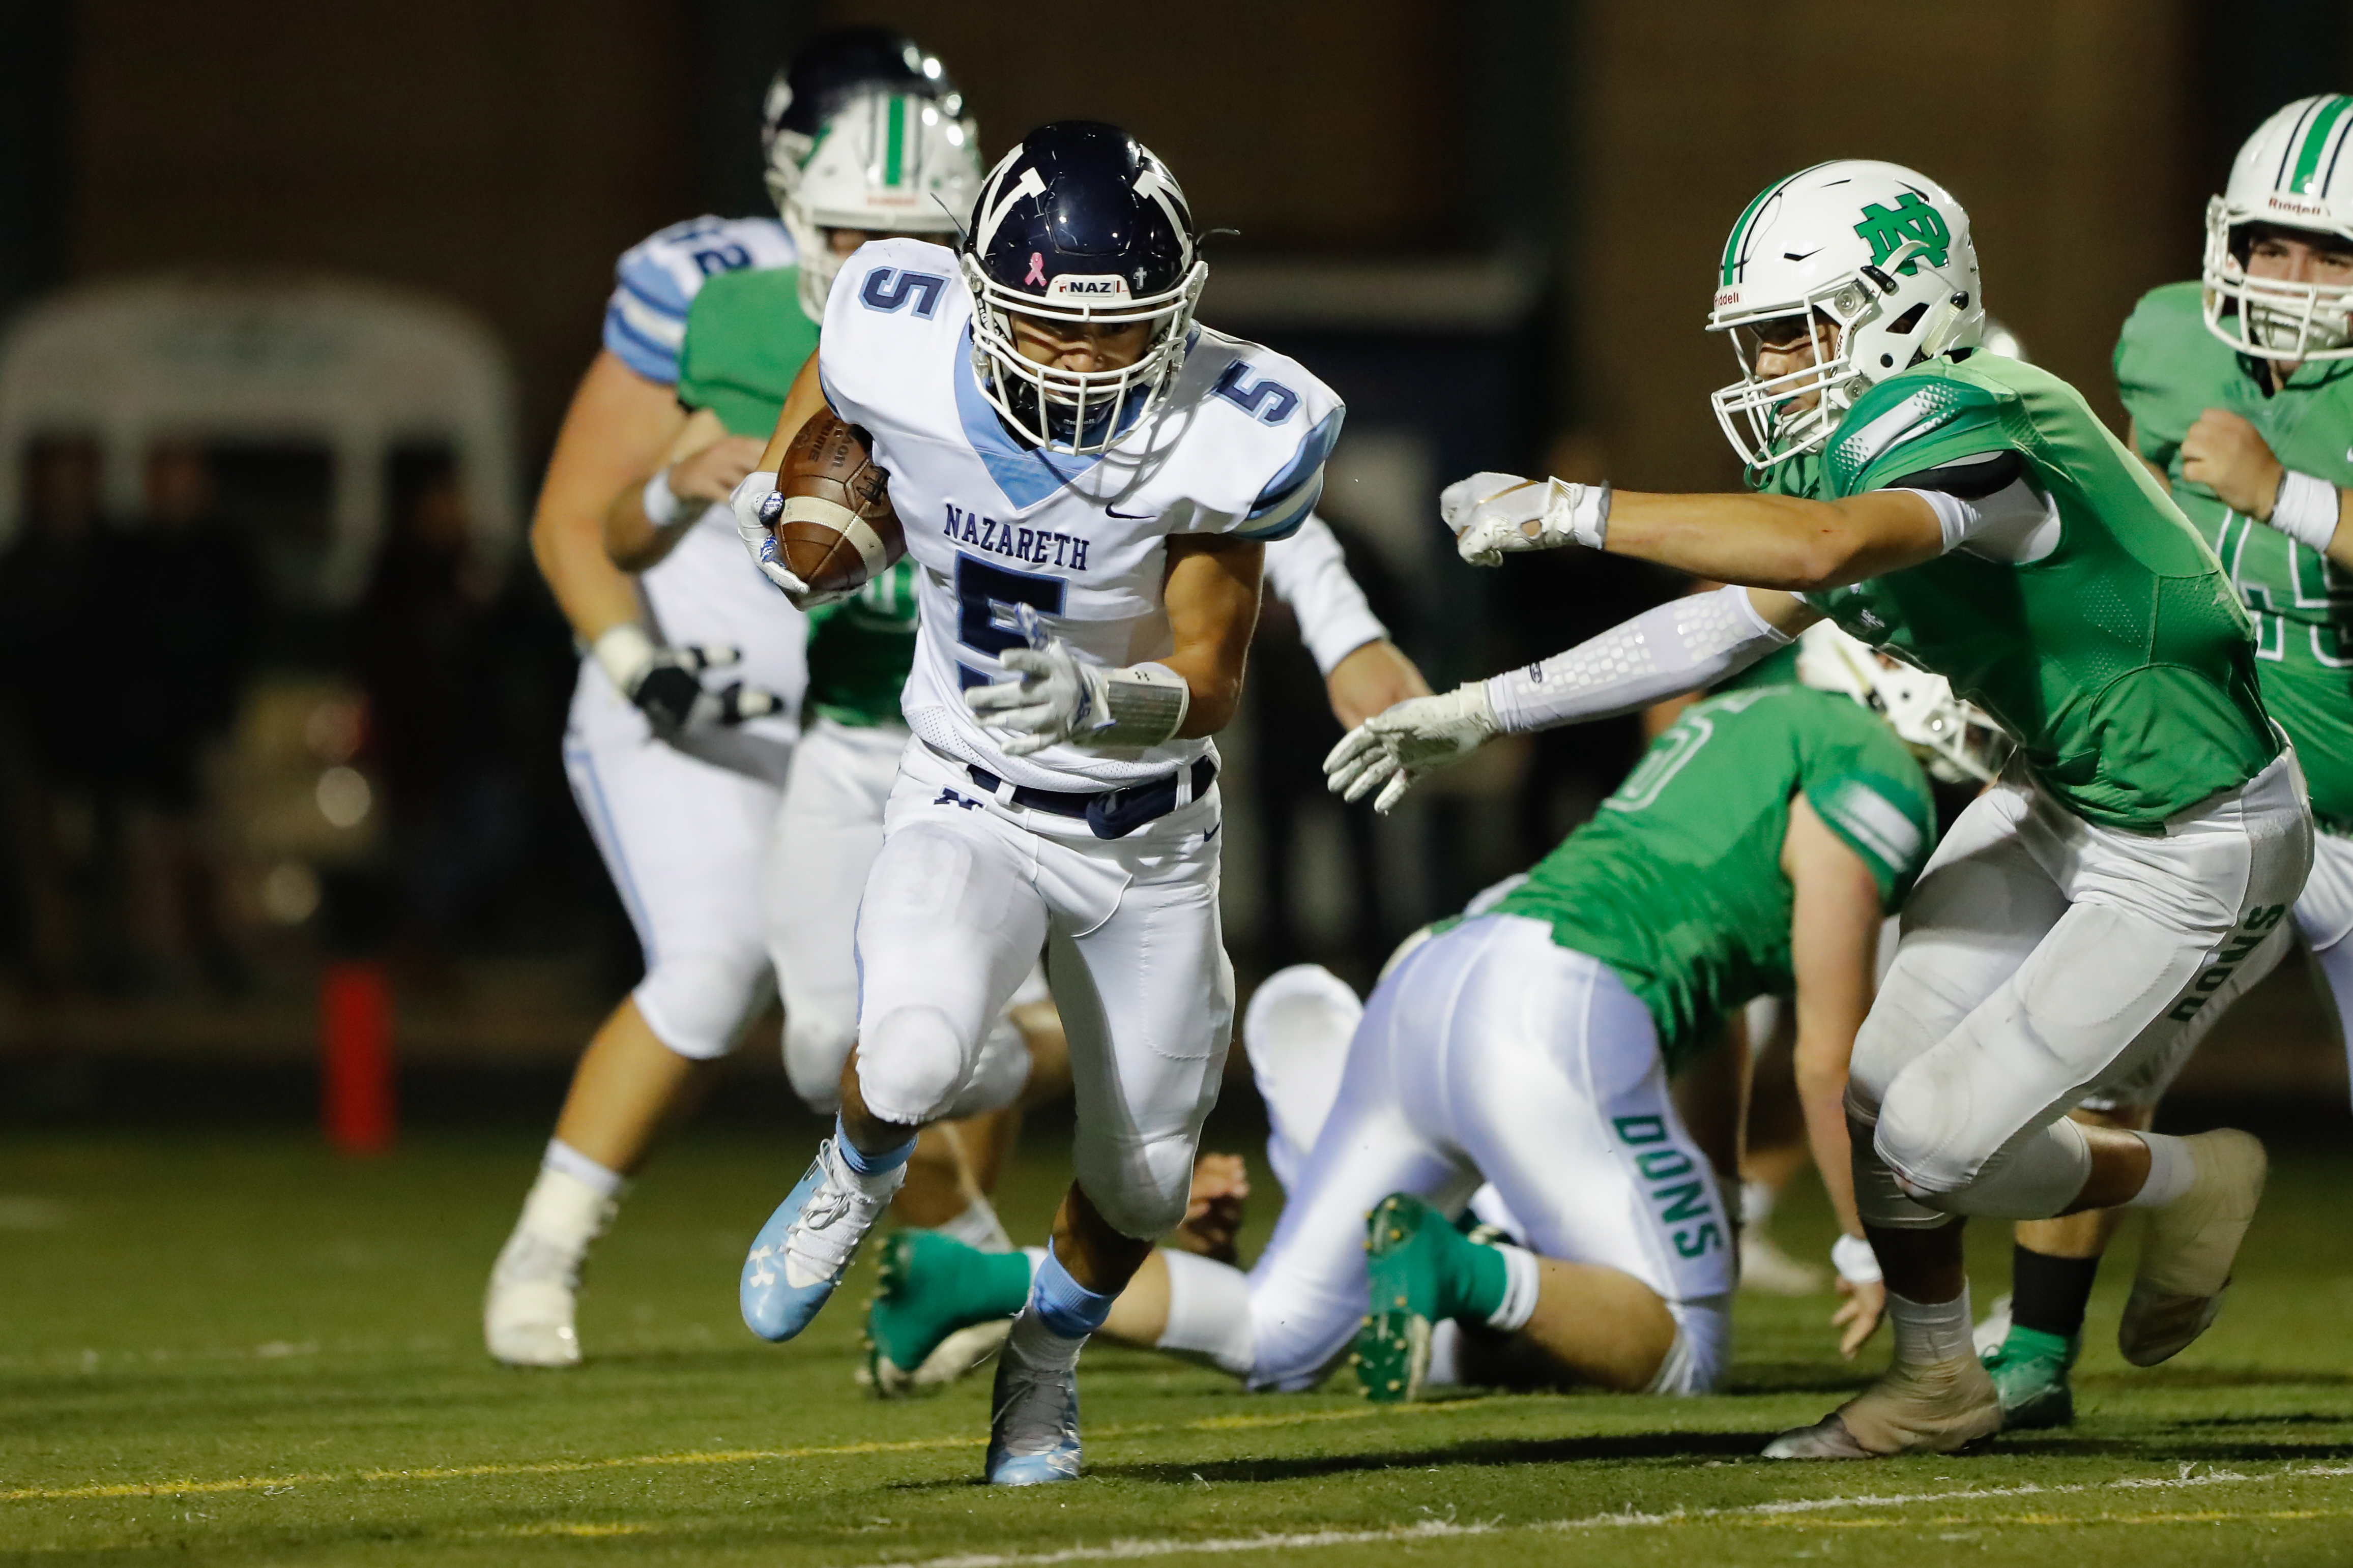 Nazareth's Alex Carrillo (5) runs the ball against Notre Dame.